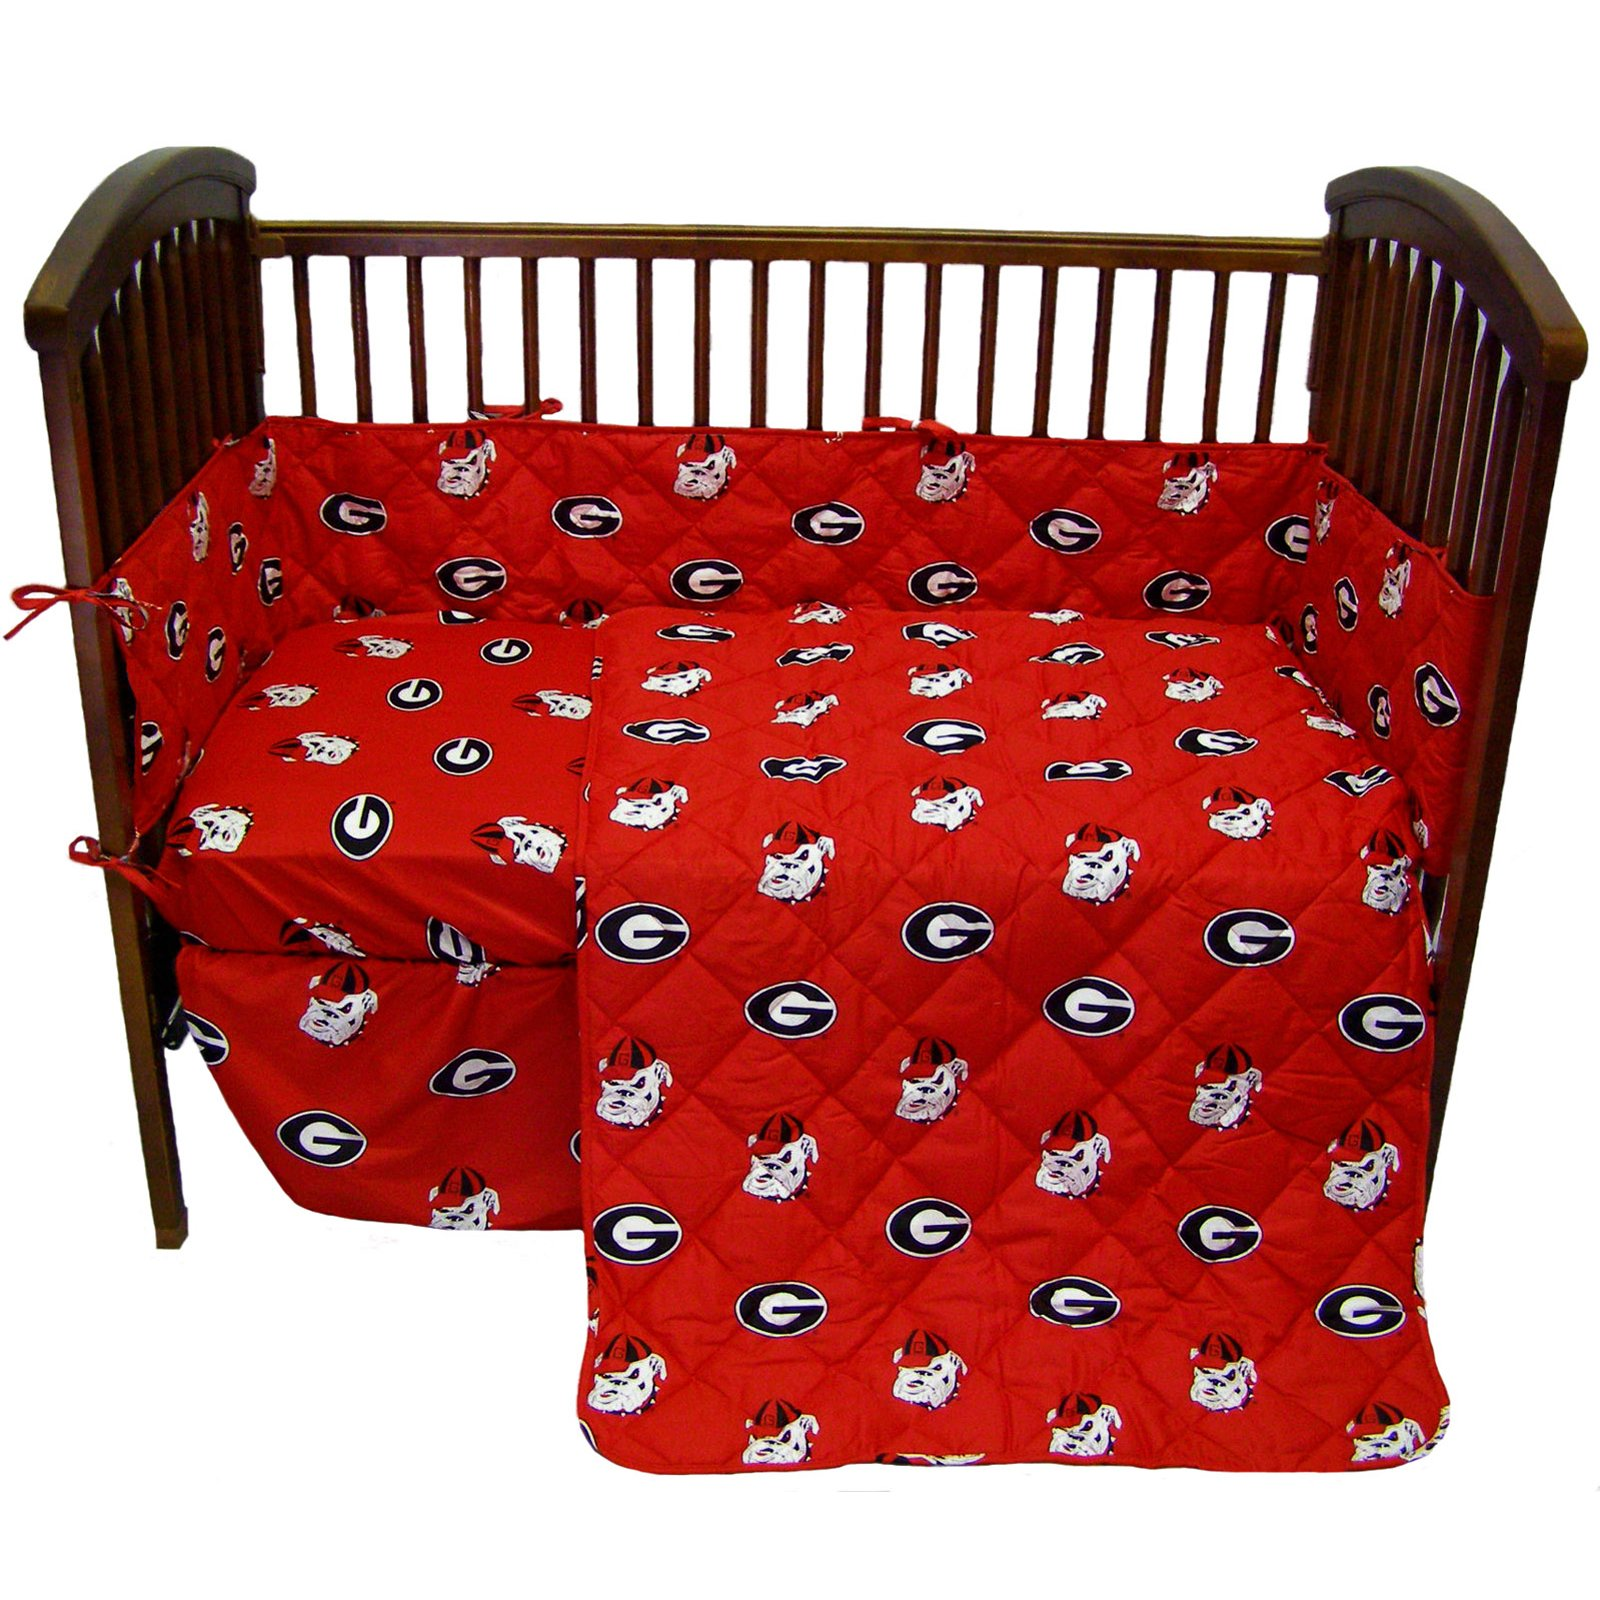 Georgia Bulldogs 5 Piece Crib Set - Entire Set includes: (1) Reversible Comforter, (1) Bed Skirt , (2) Fitted Sheets and (1) Bumper Pad - Decorate Your Nursery and Save Big By Bundling!